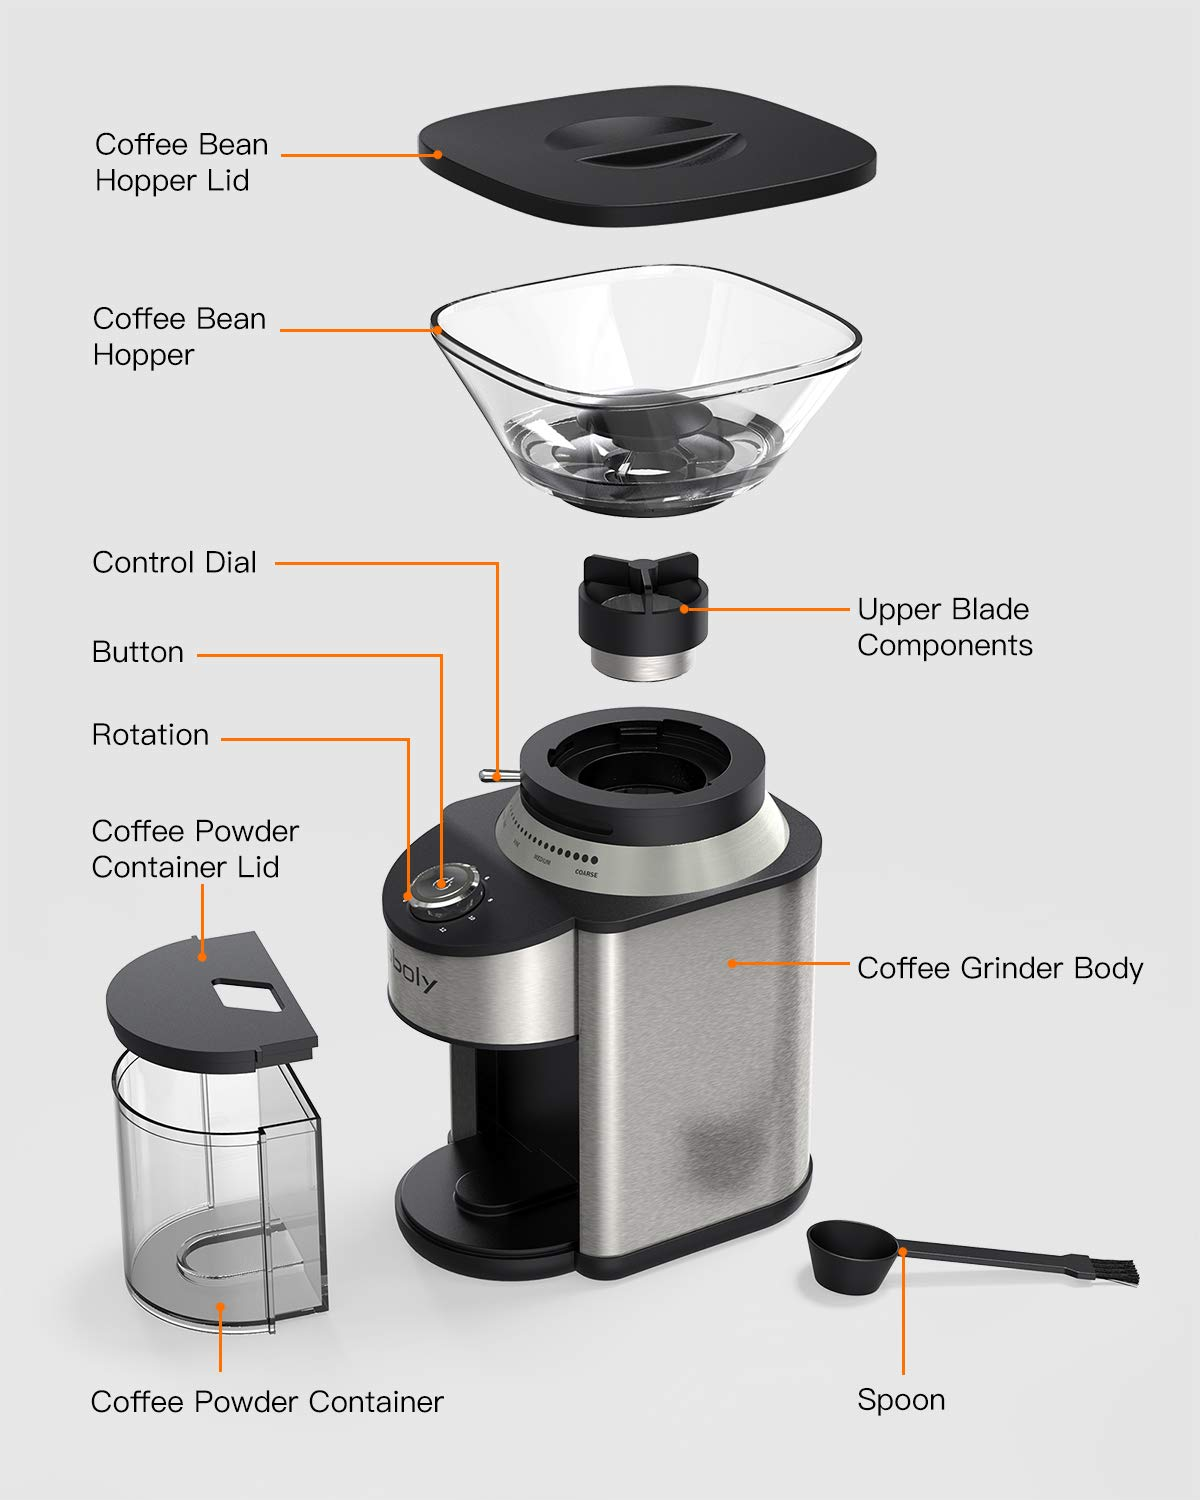 Conical Burr Coffee Grinder Electric Coffee Grinder for Drip Stainless Steel Adjustable Burr Mill with 19 Precise Grind Settings French Press American and Turkish Coffee Makers Percolator